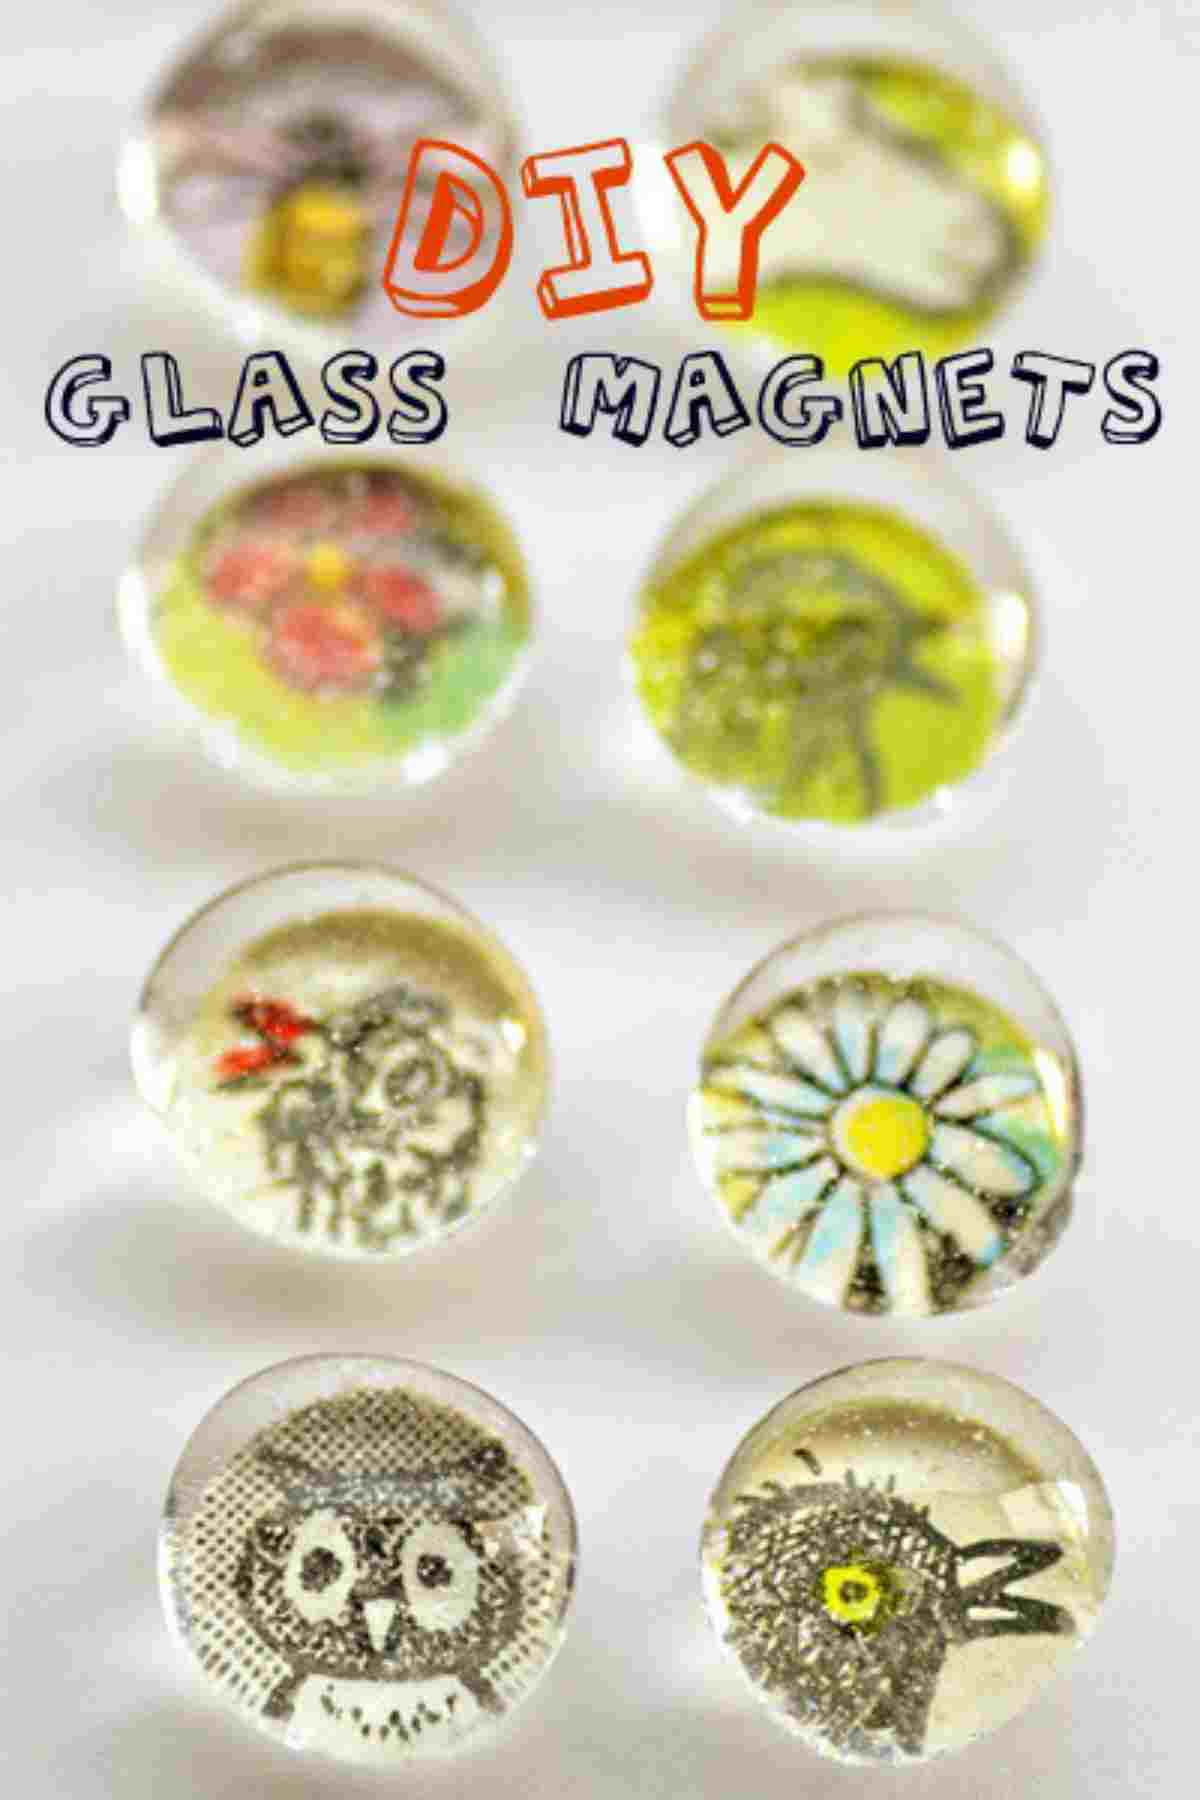 different glass magnets | Projects For Teenagers | 39 Cool DIY Crafts For Teens | art projects for teenage students